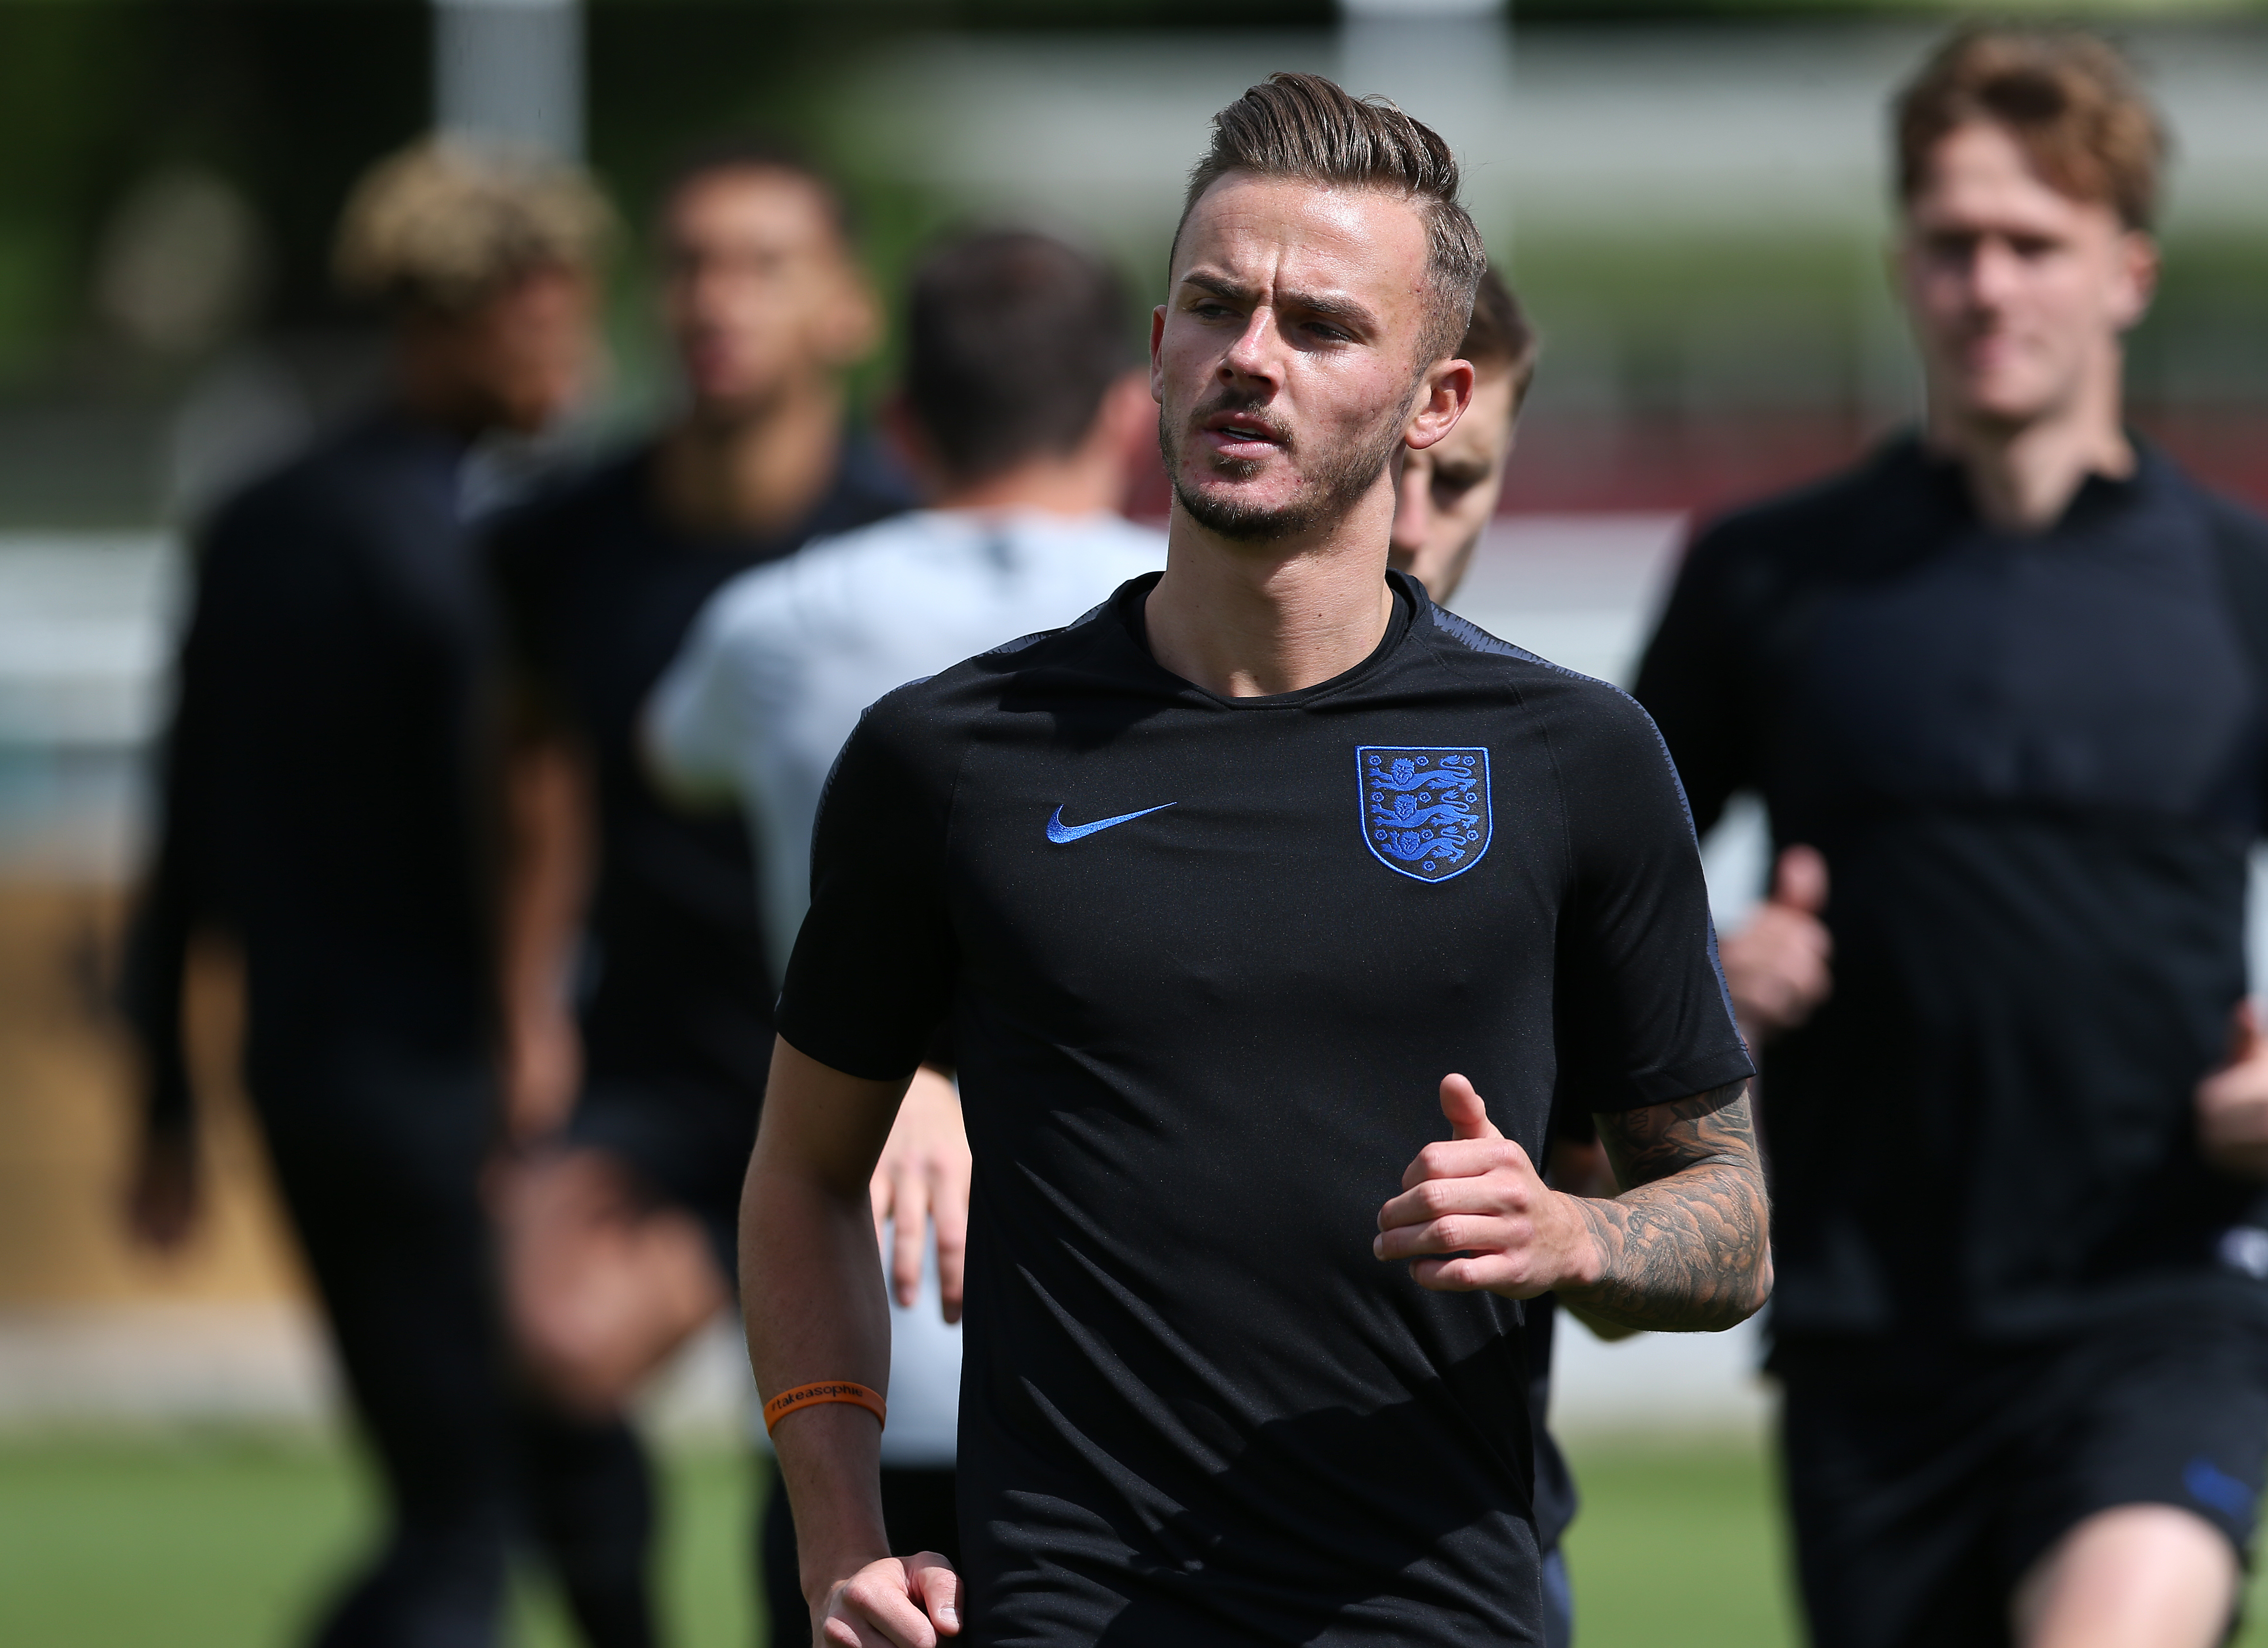 James Maddison could cover a number of positions through the middle or out wide. Image: PA Images